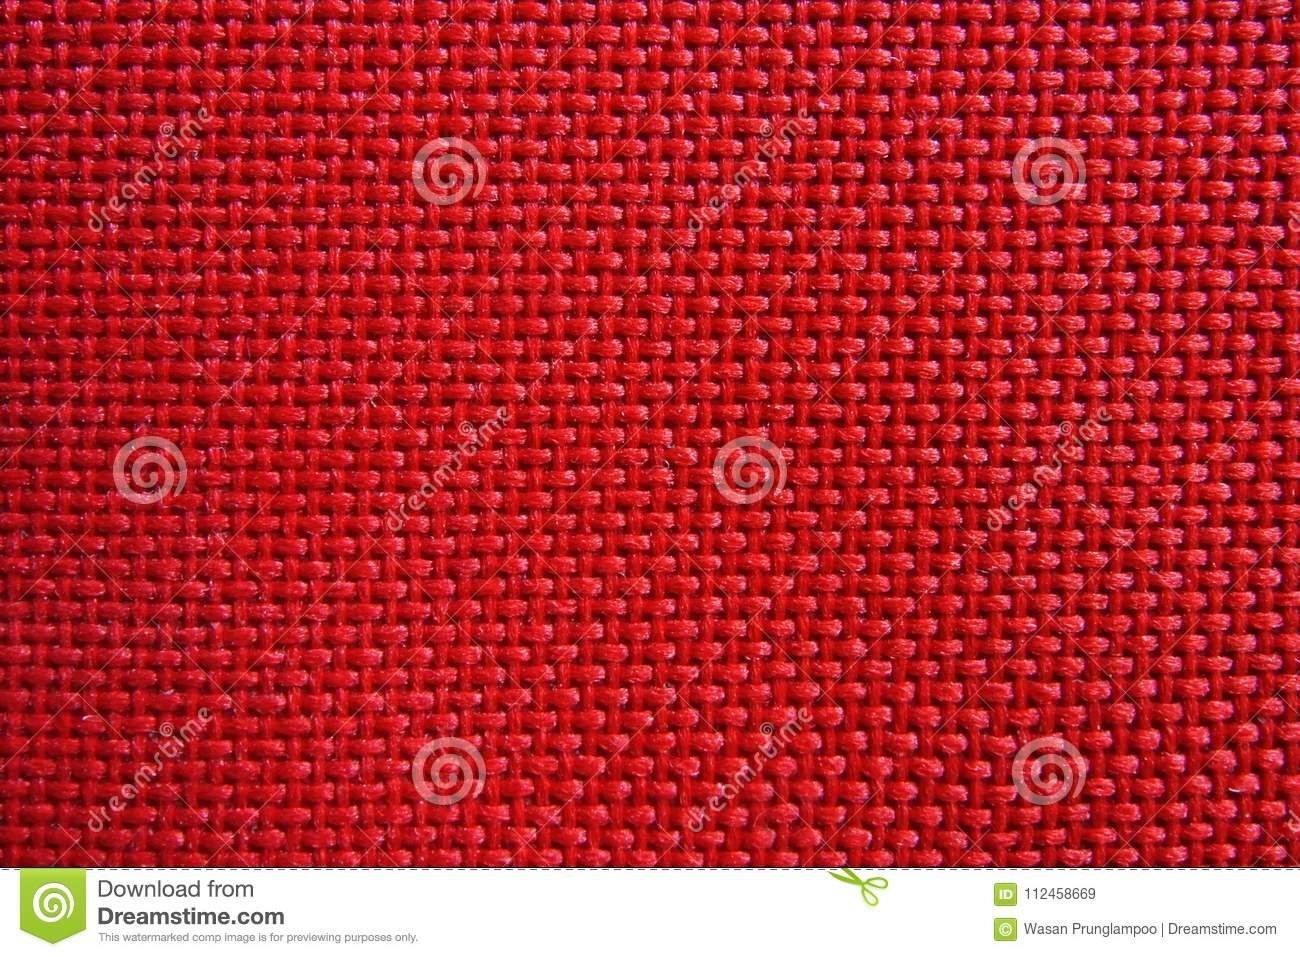 Red nylon fabric pattern texture.